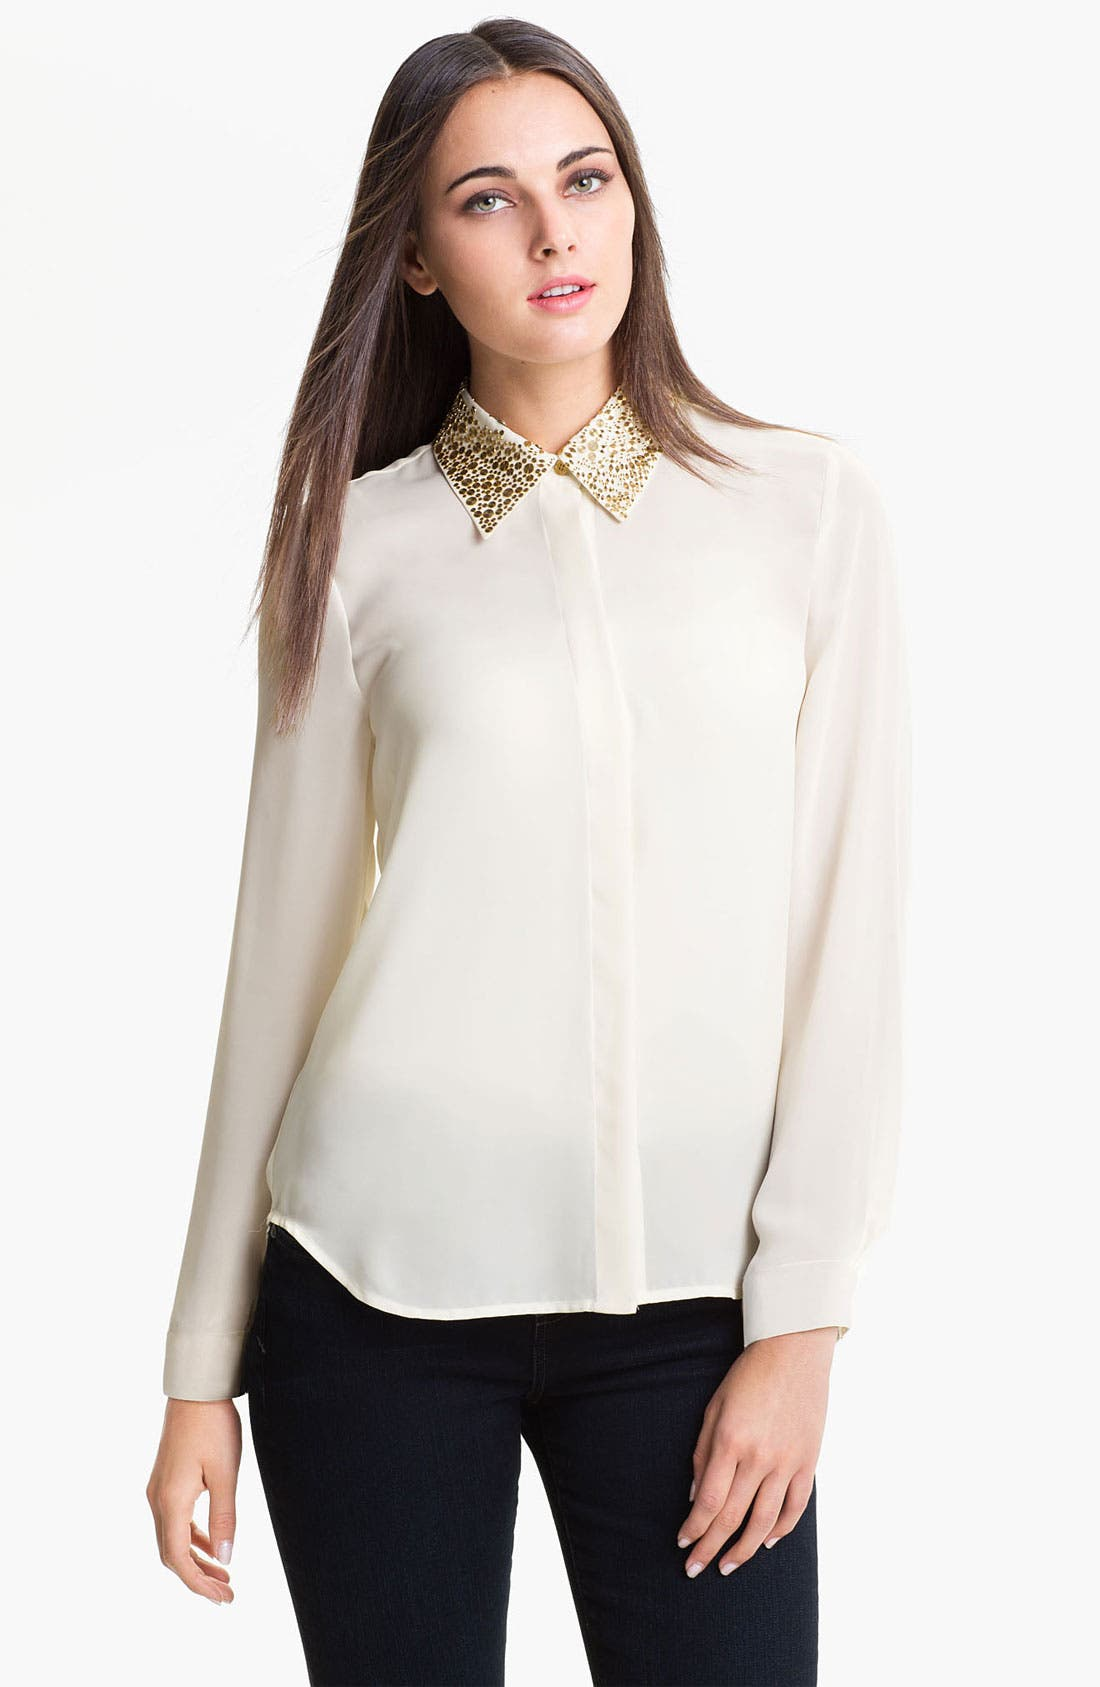 Alternate Image 1 Selected - Vince Camuto 'Disco' Stud Trim Blouse